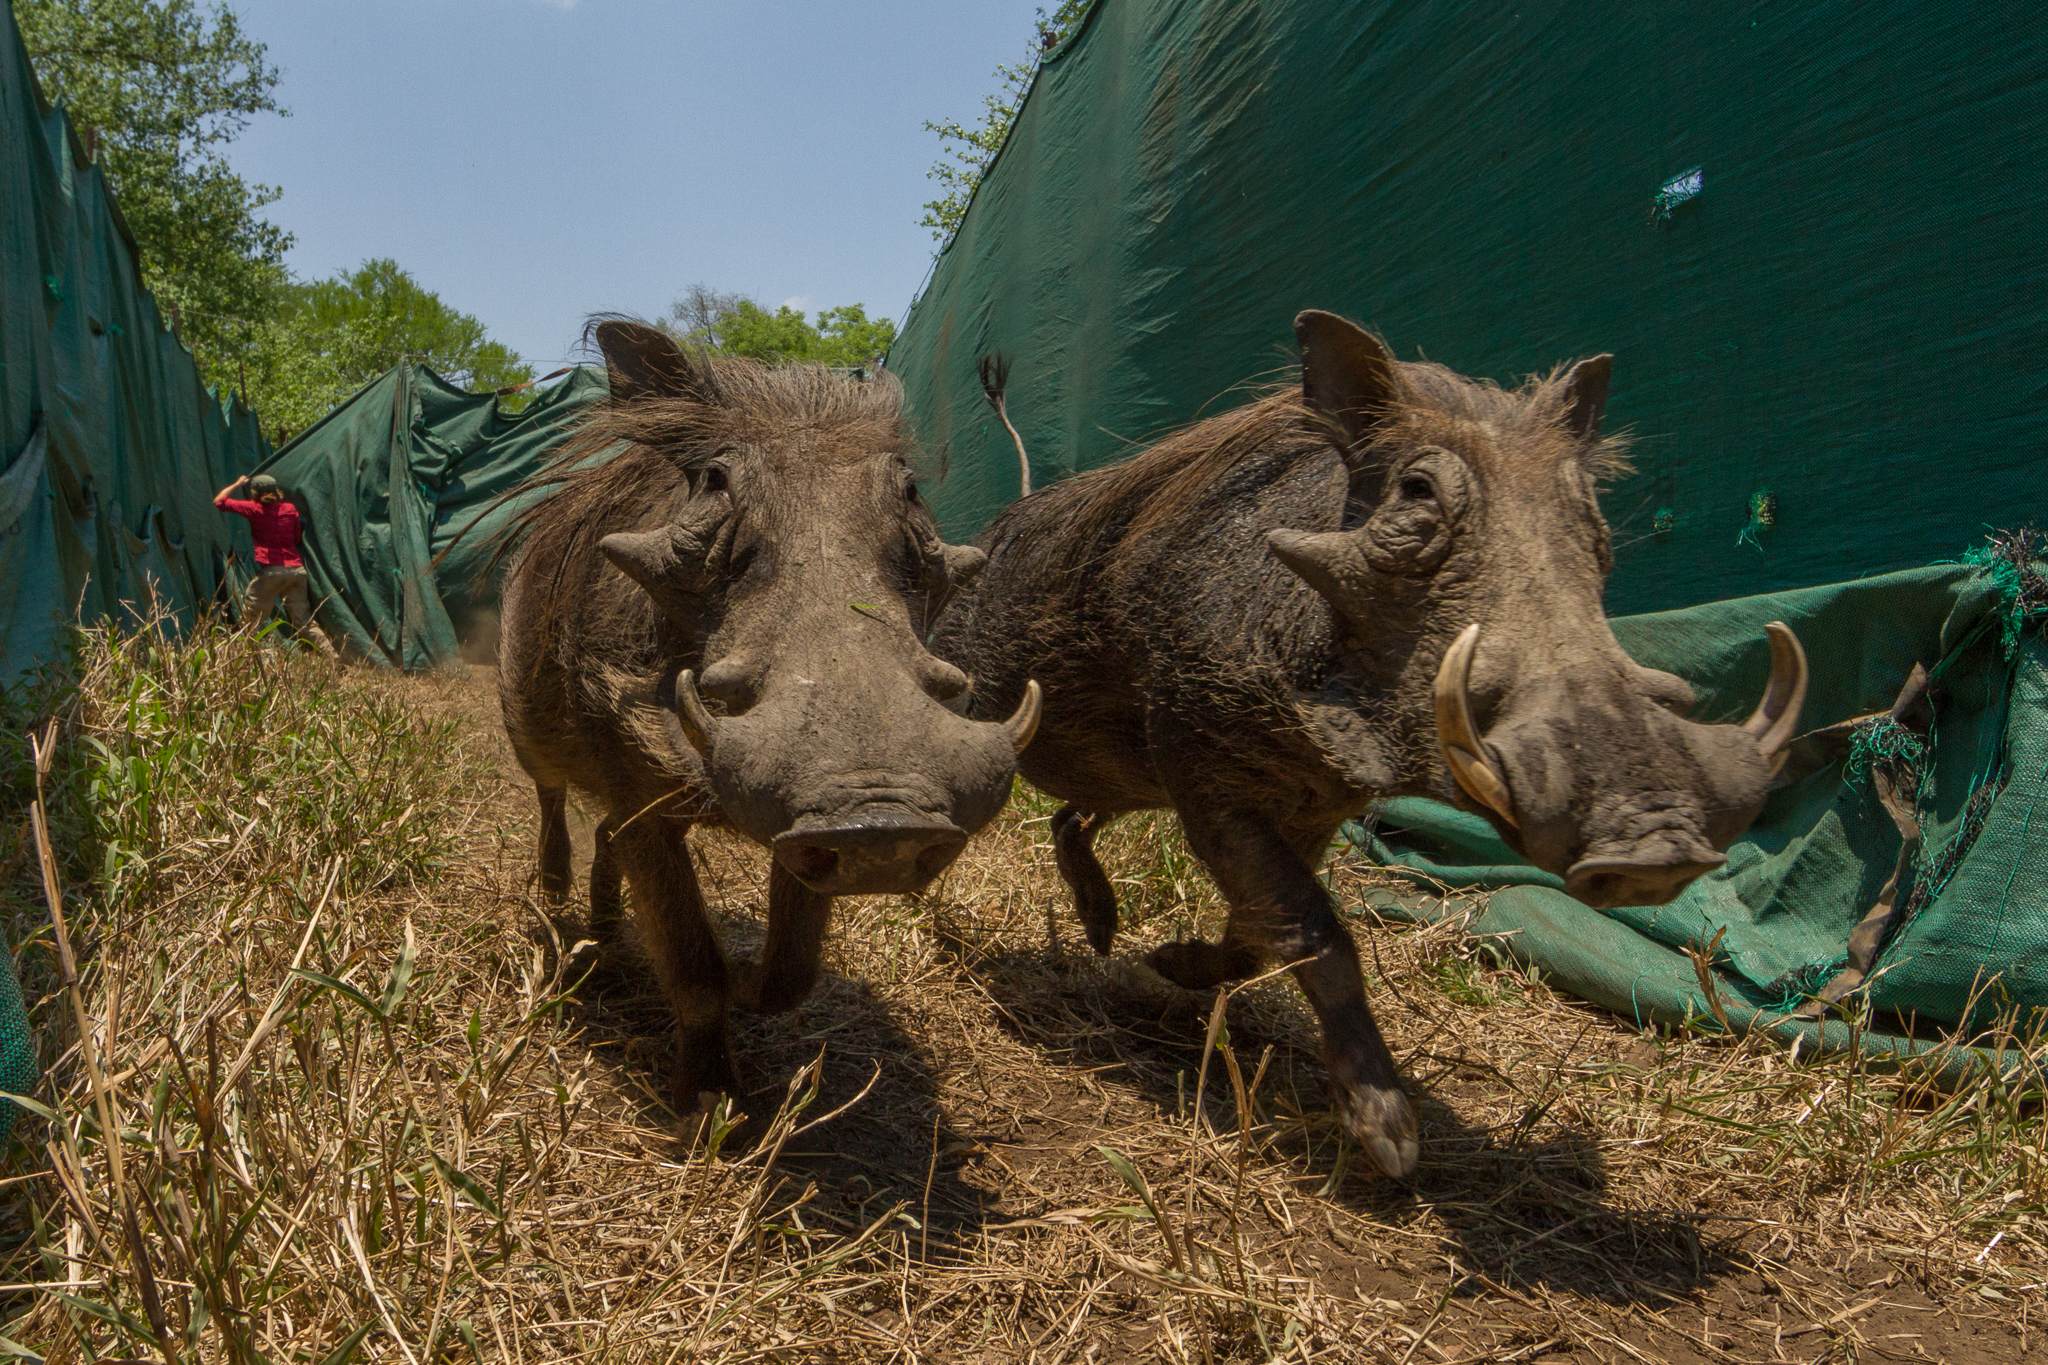 Two warthogs (Phacochoerus africanus) are pushed by a helicopter toward a transport truck through a huge fabric funnel, as workers close curtains behind them so they can't escape. The warthogs will soon start a new life in the southern part of the country, where wildlife populations are still struggling to recover after the war. These wildlife captures are a testament to the success of the park's restoration: Some species, like these warthogs, are now so abundant that managers are able to send them to other parks to help in their conservation efforts.